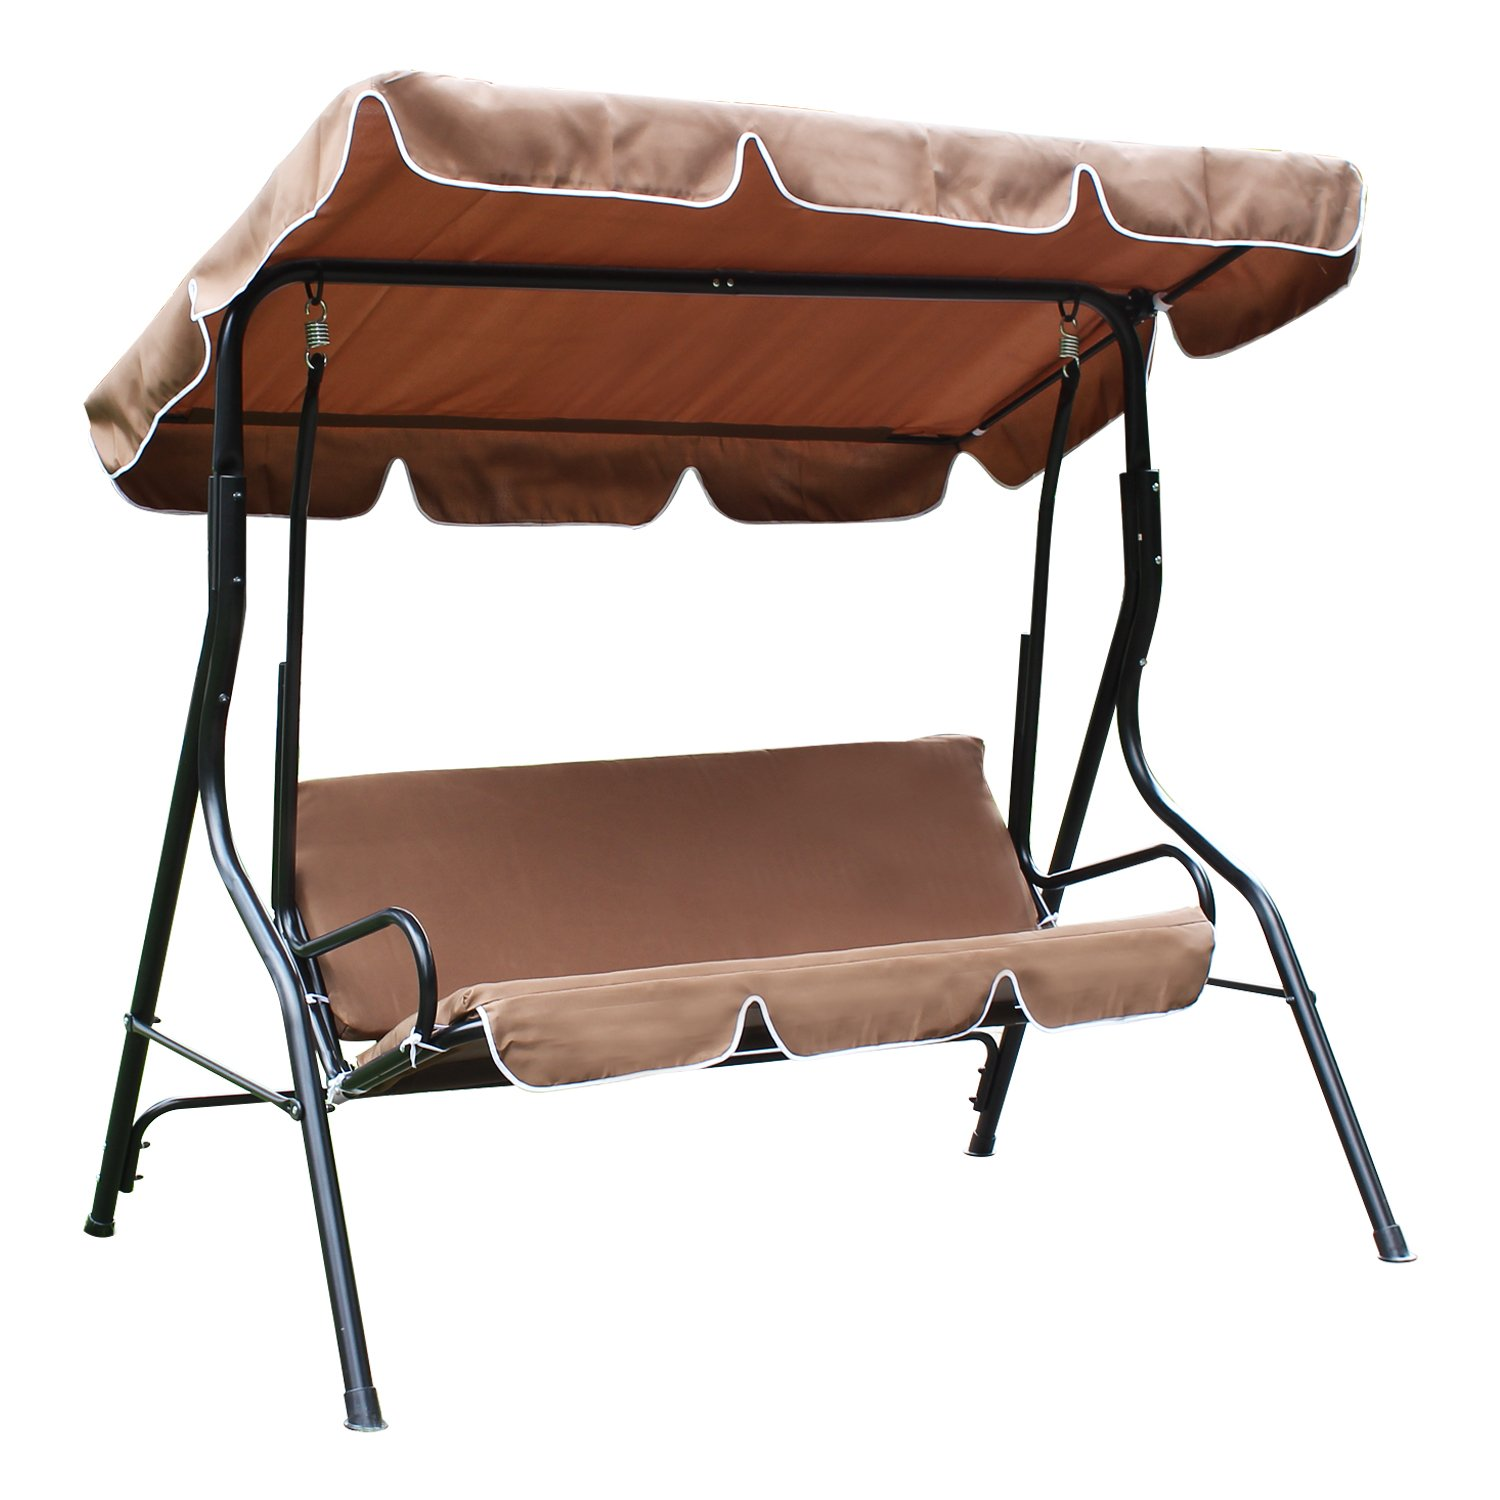 Homebeez Outdoor Chair Canopy Awning Porch Swings Bench, for Two or Three People Brown/Coffee